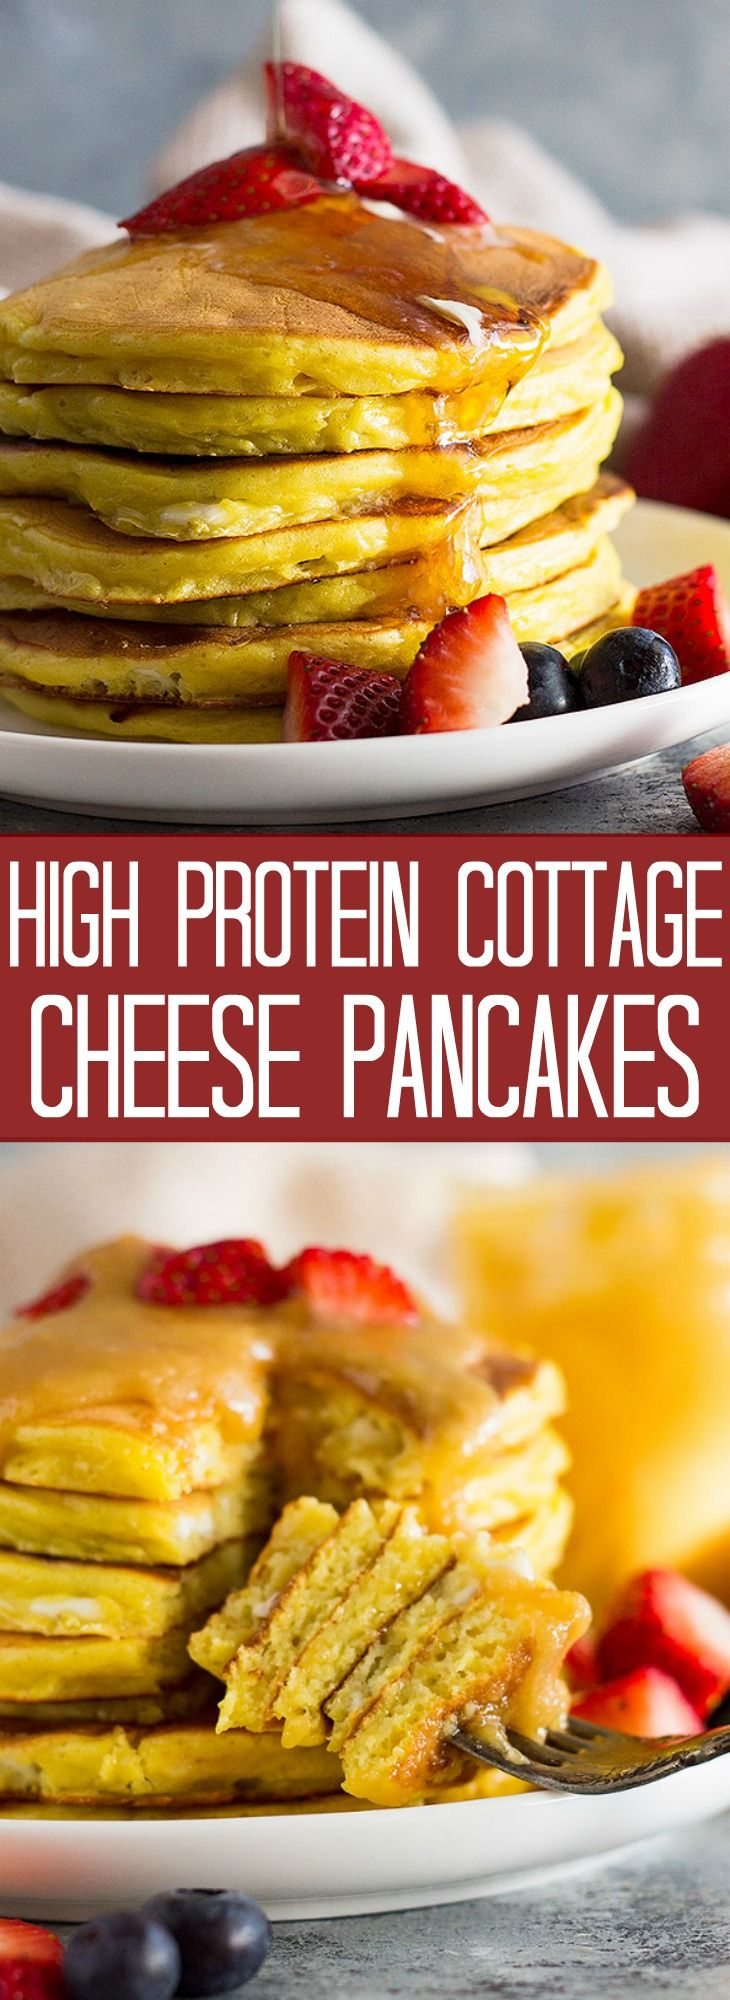 High Protein Cottage Cheese Pancakes- This is a great recipe if you are looking to add more protein to your diet without using protein powder! These pancakes are light, fluffy, and low carb! #proteinpowderpancakes